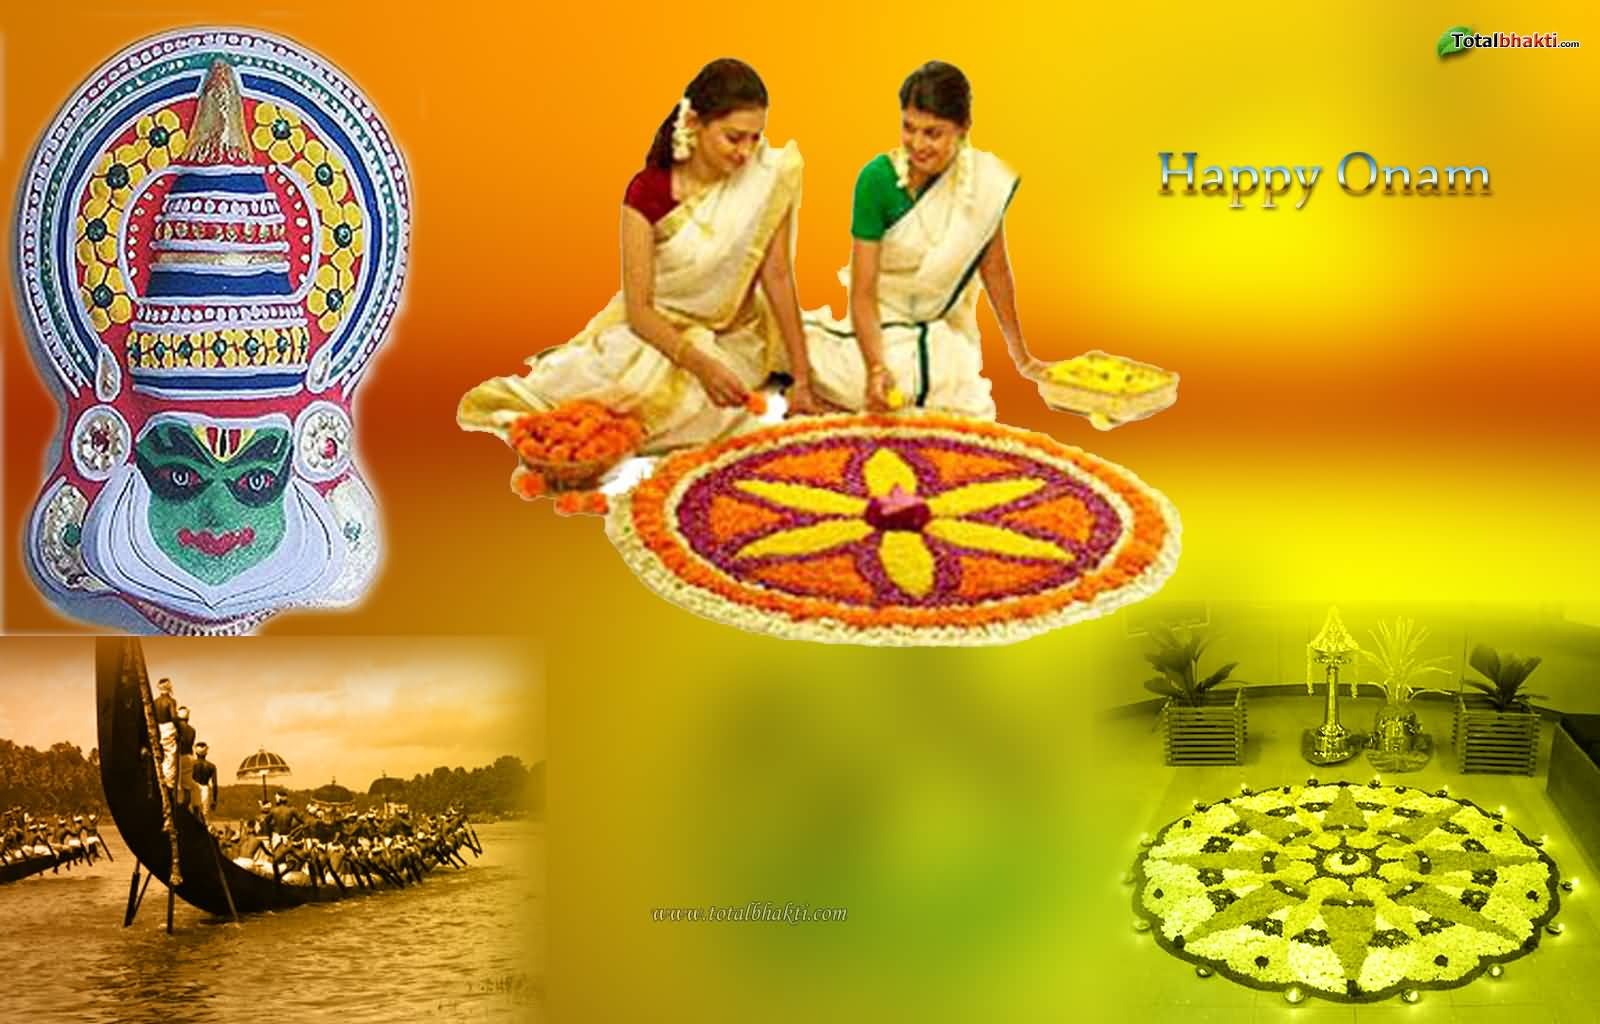 50 very beautiful happy onam wish pictures and images happy onam wishes picture kristyandbryce Image collections